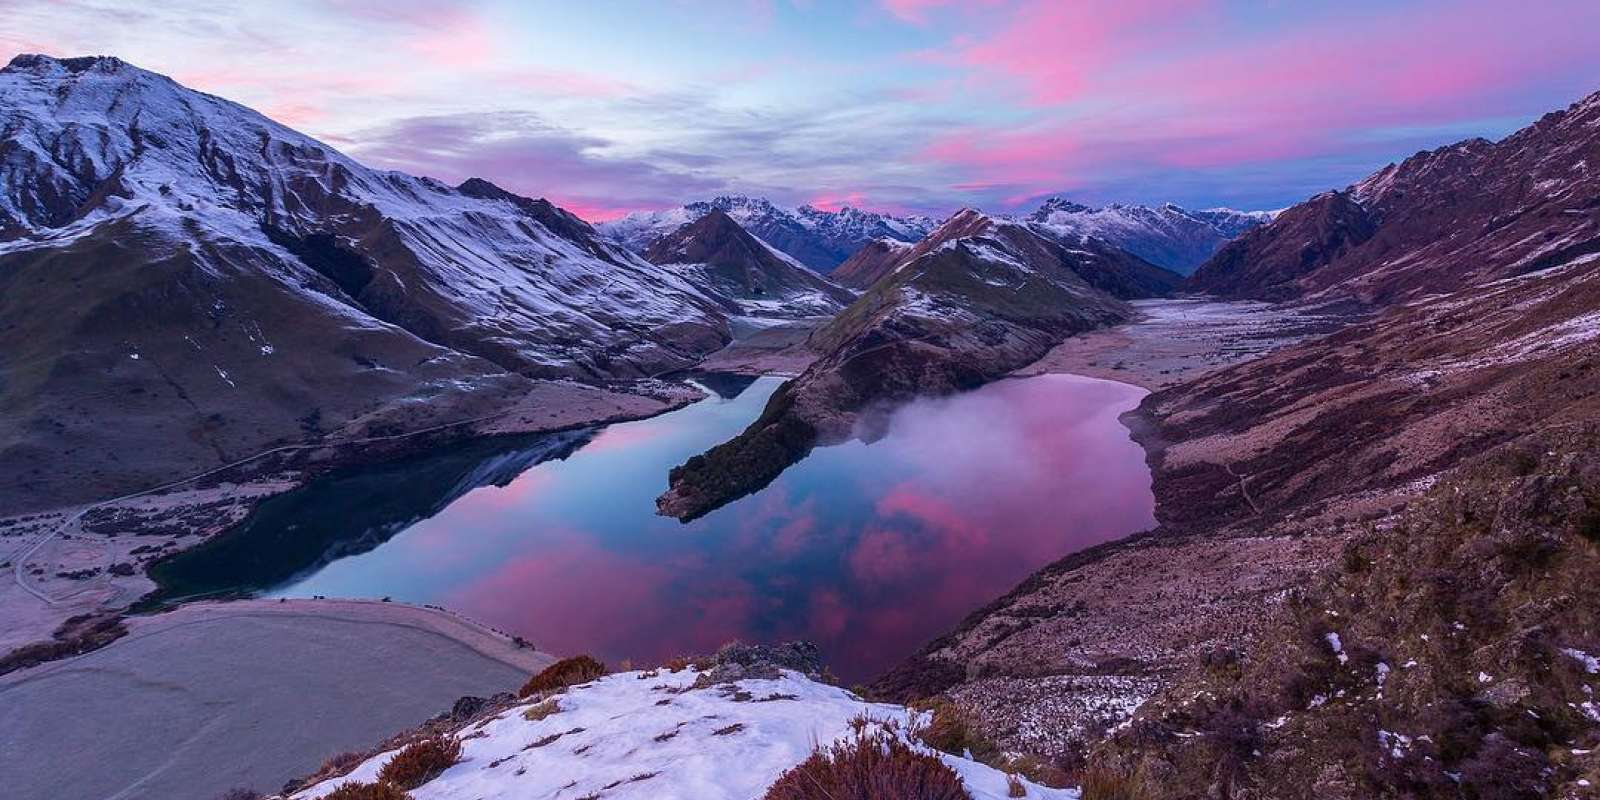 Pink skies over Moke lake